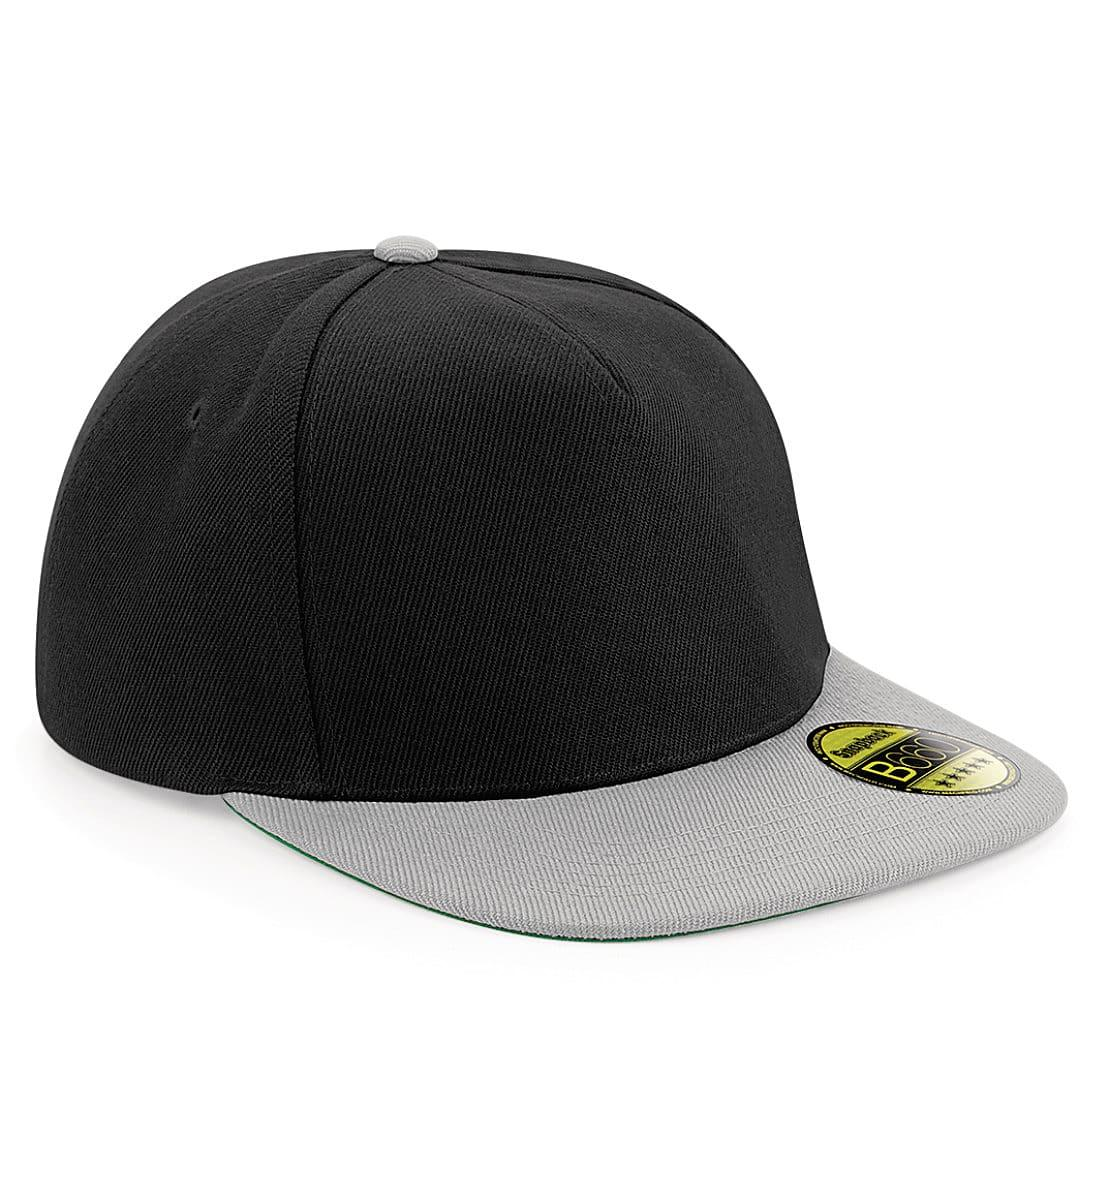 Beechfield Original Flat Peak Snapback in Black / Grey (Product Code: B660)